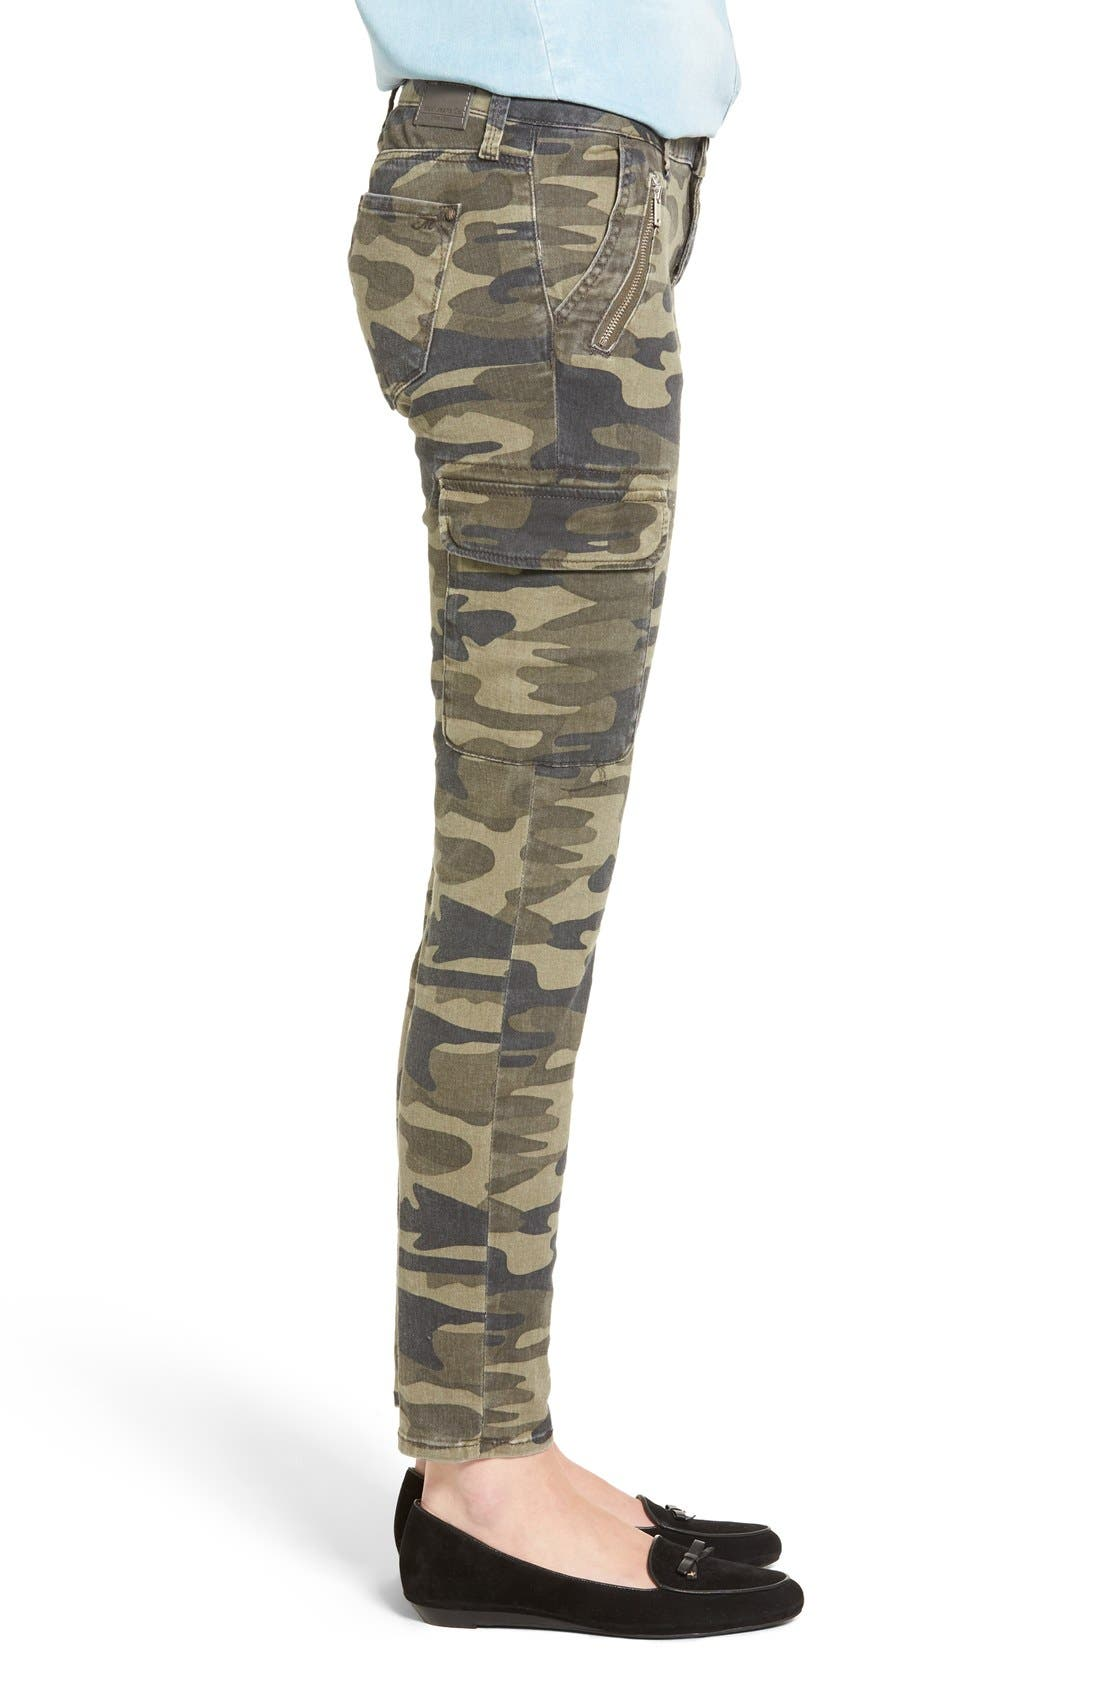 Juliette Camo Print Military Cargo Pants,                             Alternate thumbnail 4, color,                             MILITARY CAMOUFLAGE